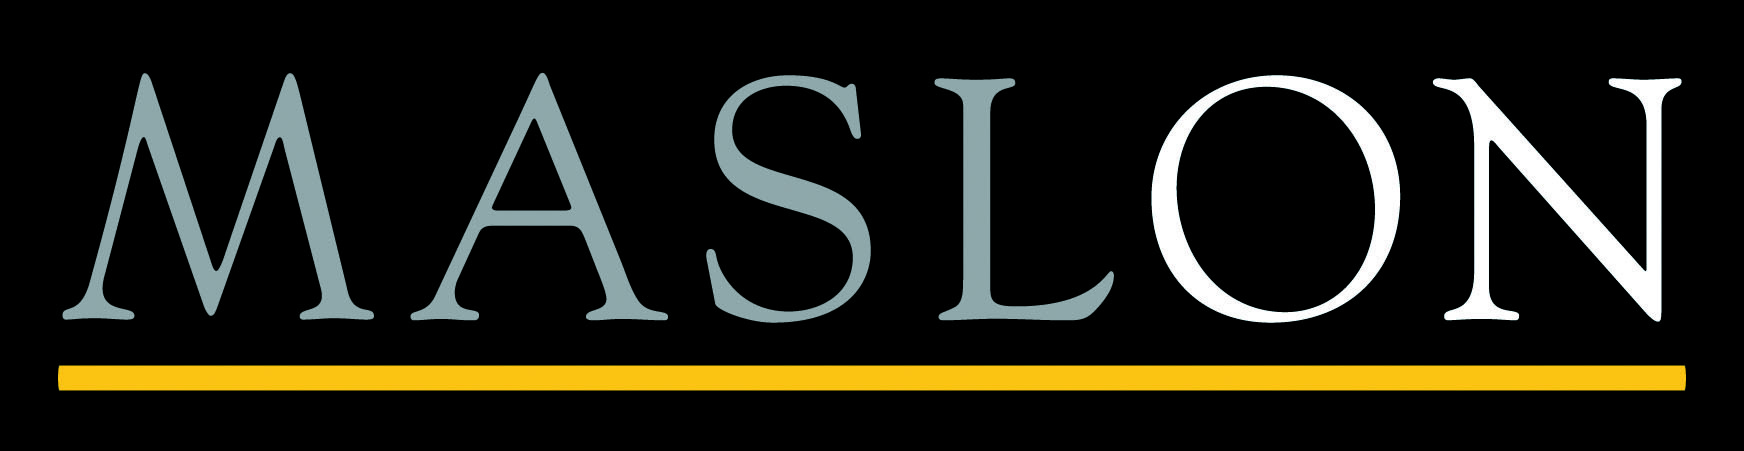 "gray and white letters ""MASLON"" underlined in yellow on a black background logo"